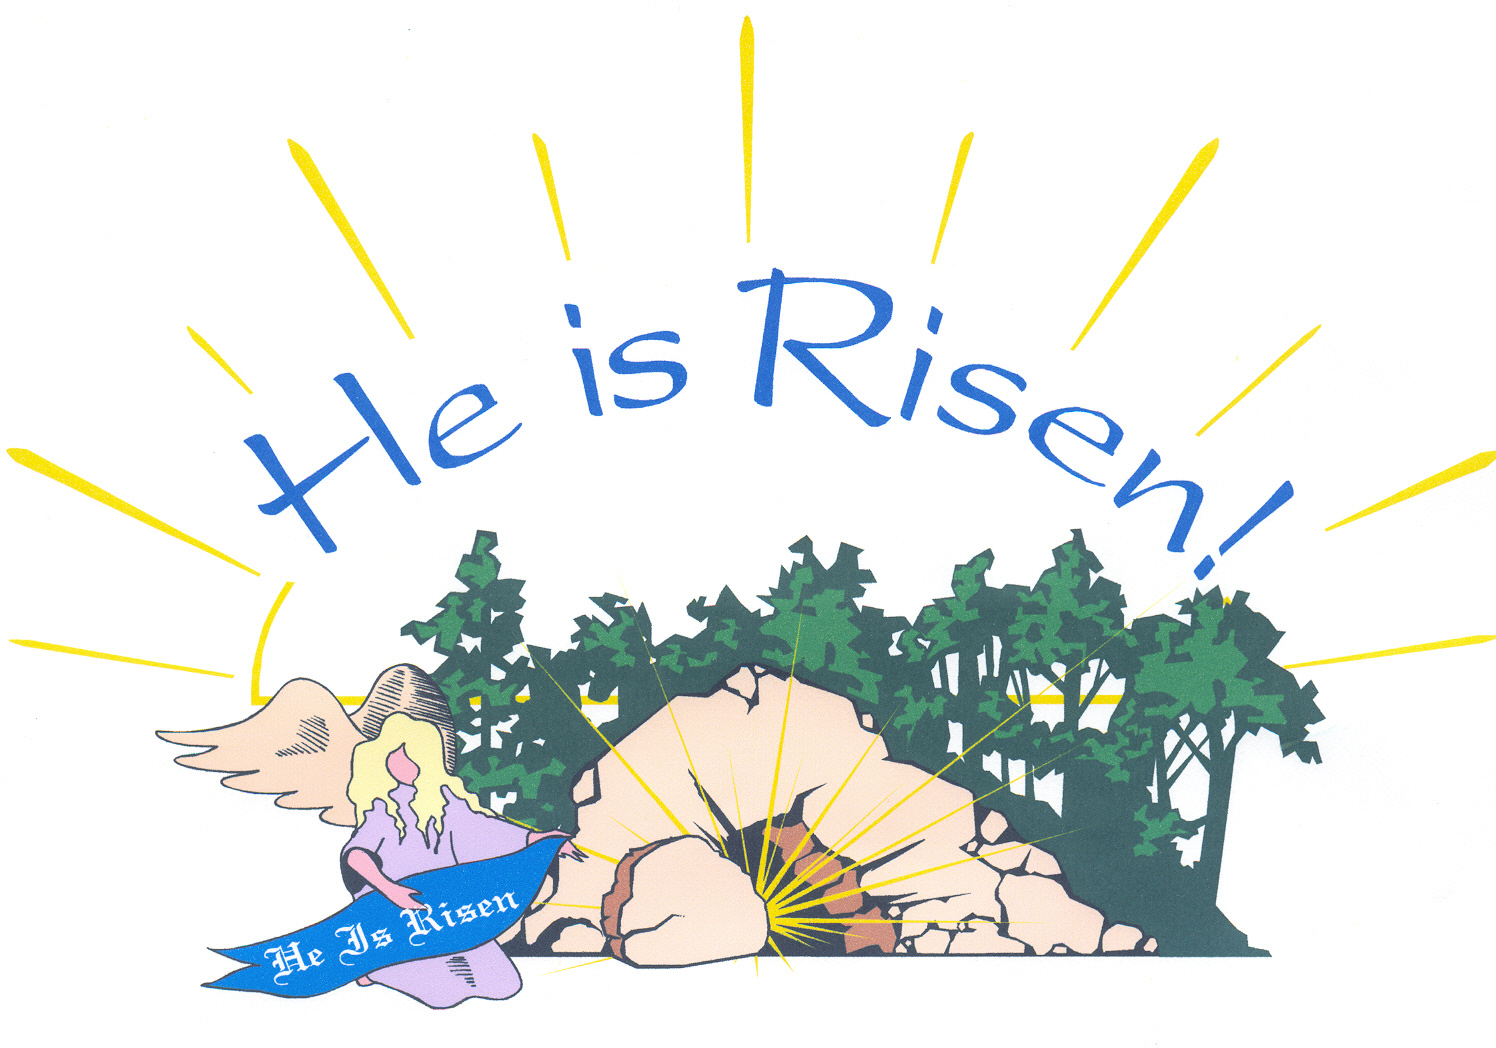 Easter Jesus Risen Backgrounds for Desktop